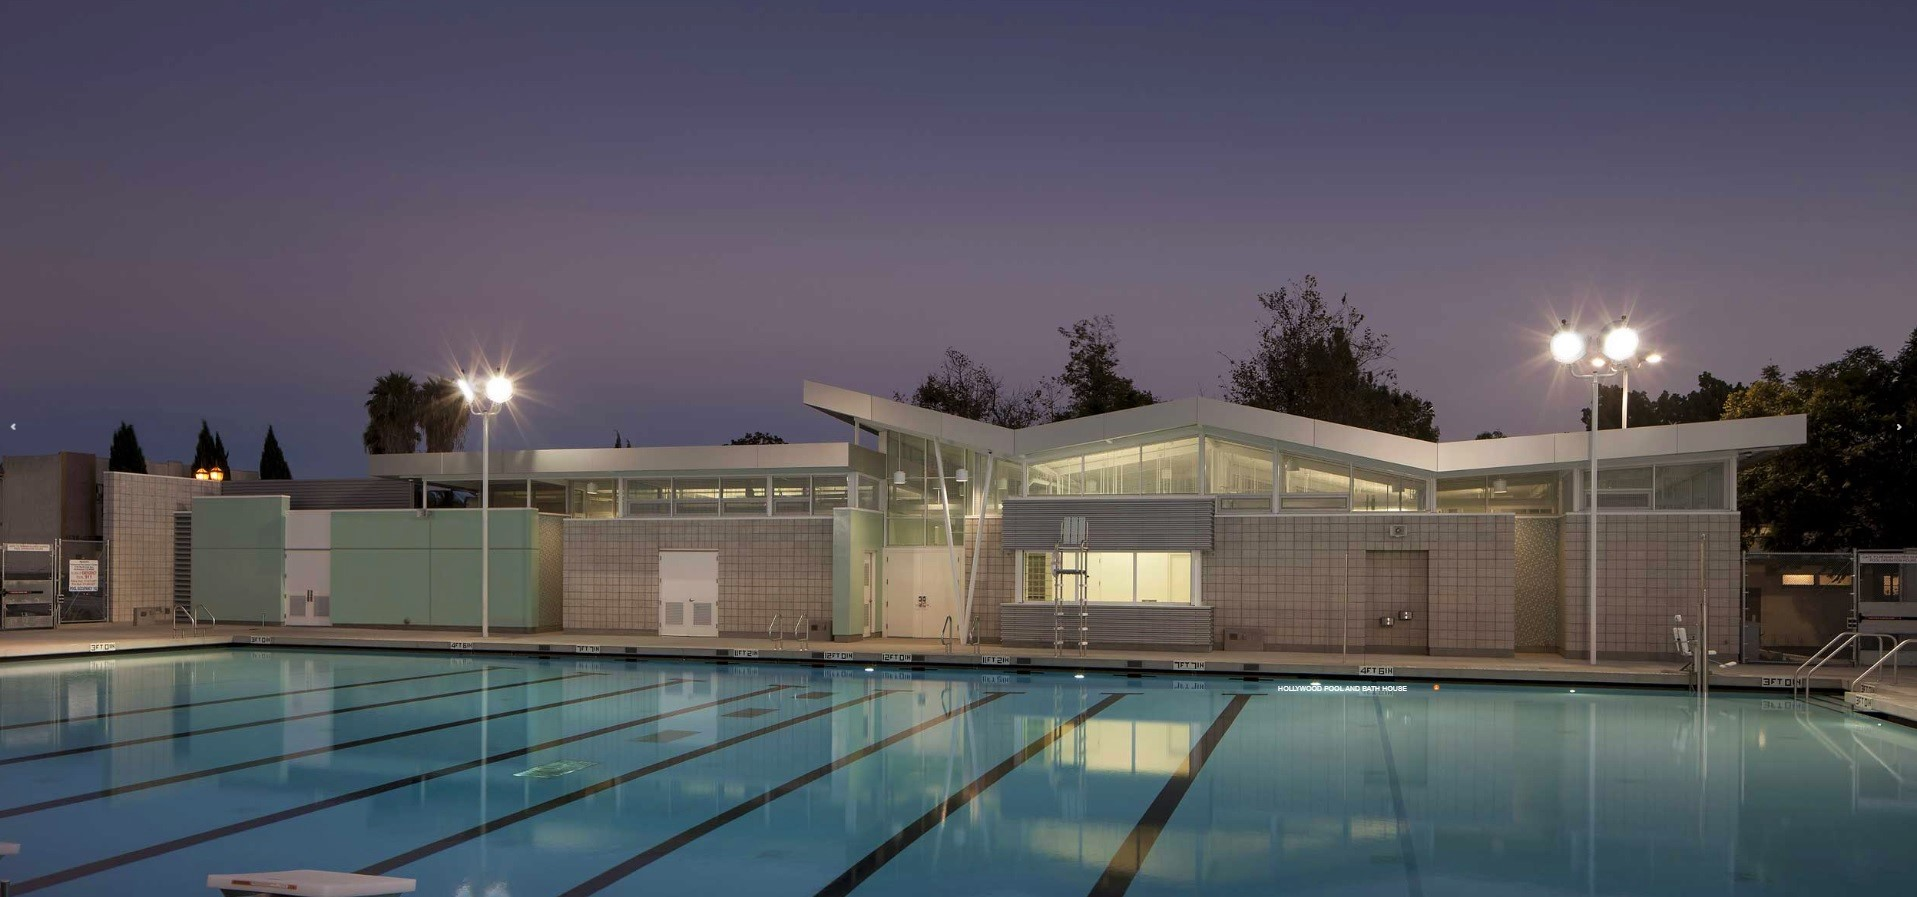 Hollywood Rec Ctr: Pool and Pool Building